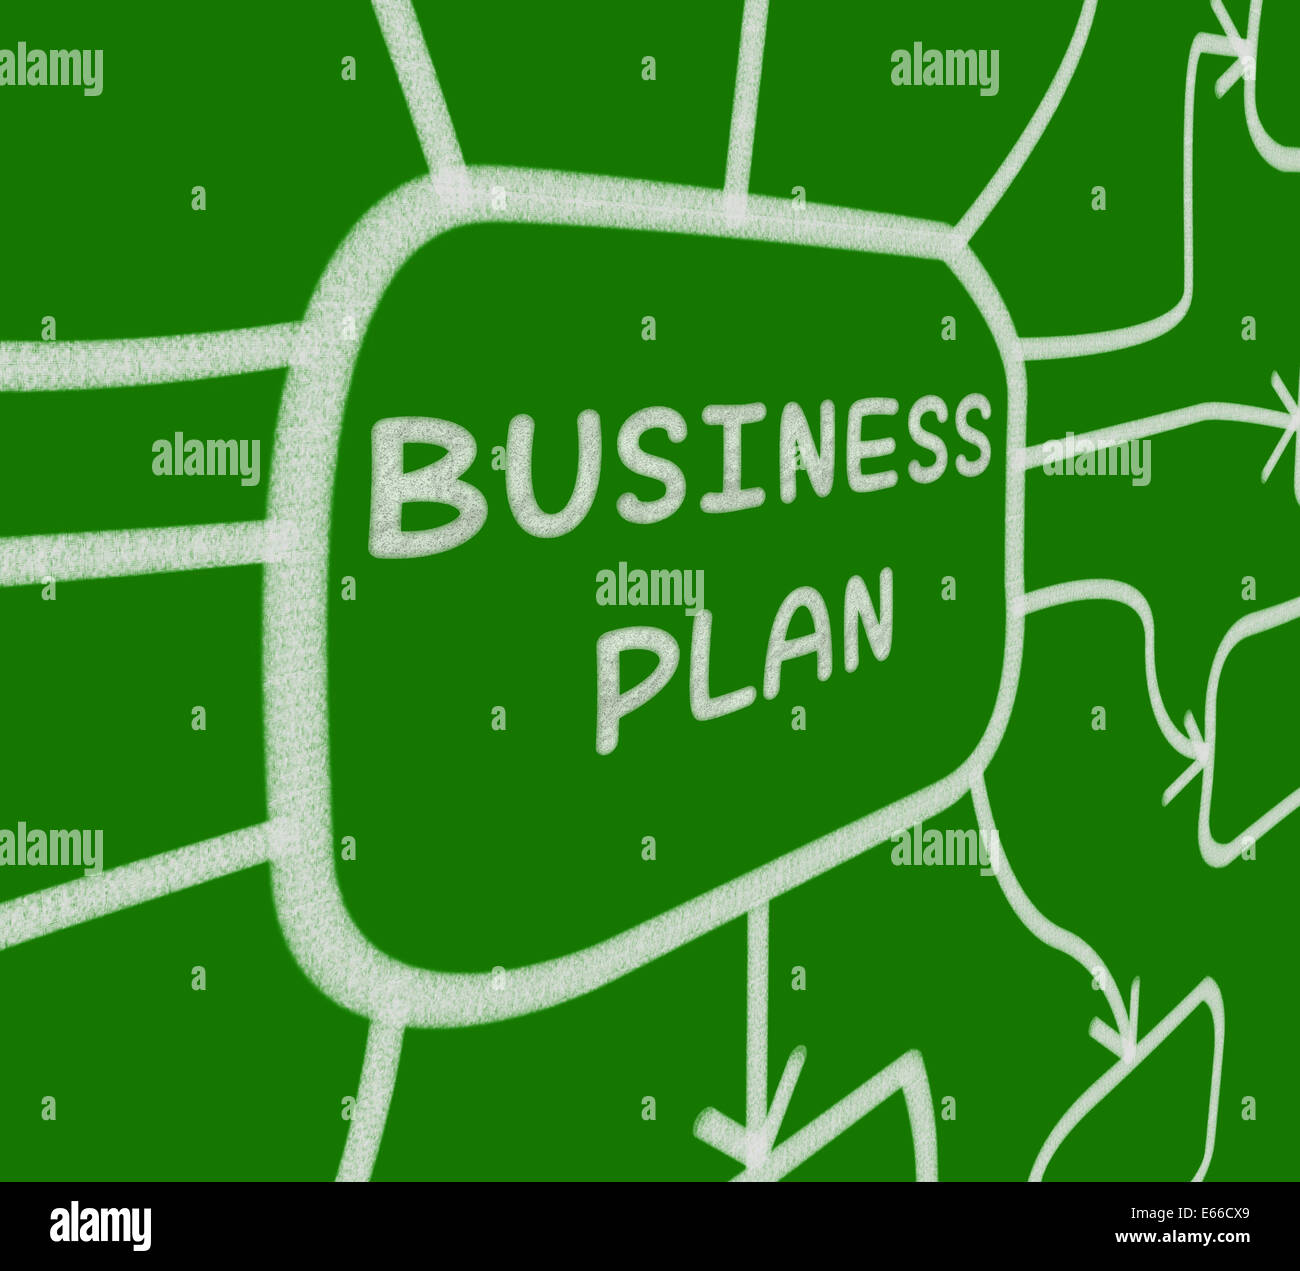 Business Plan Diagram Meaning Company Organization And Strategy Stock Photo Alamy